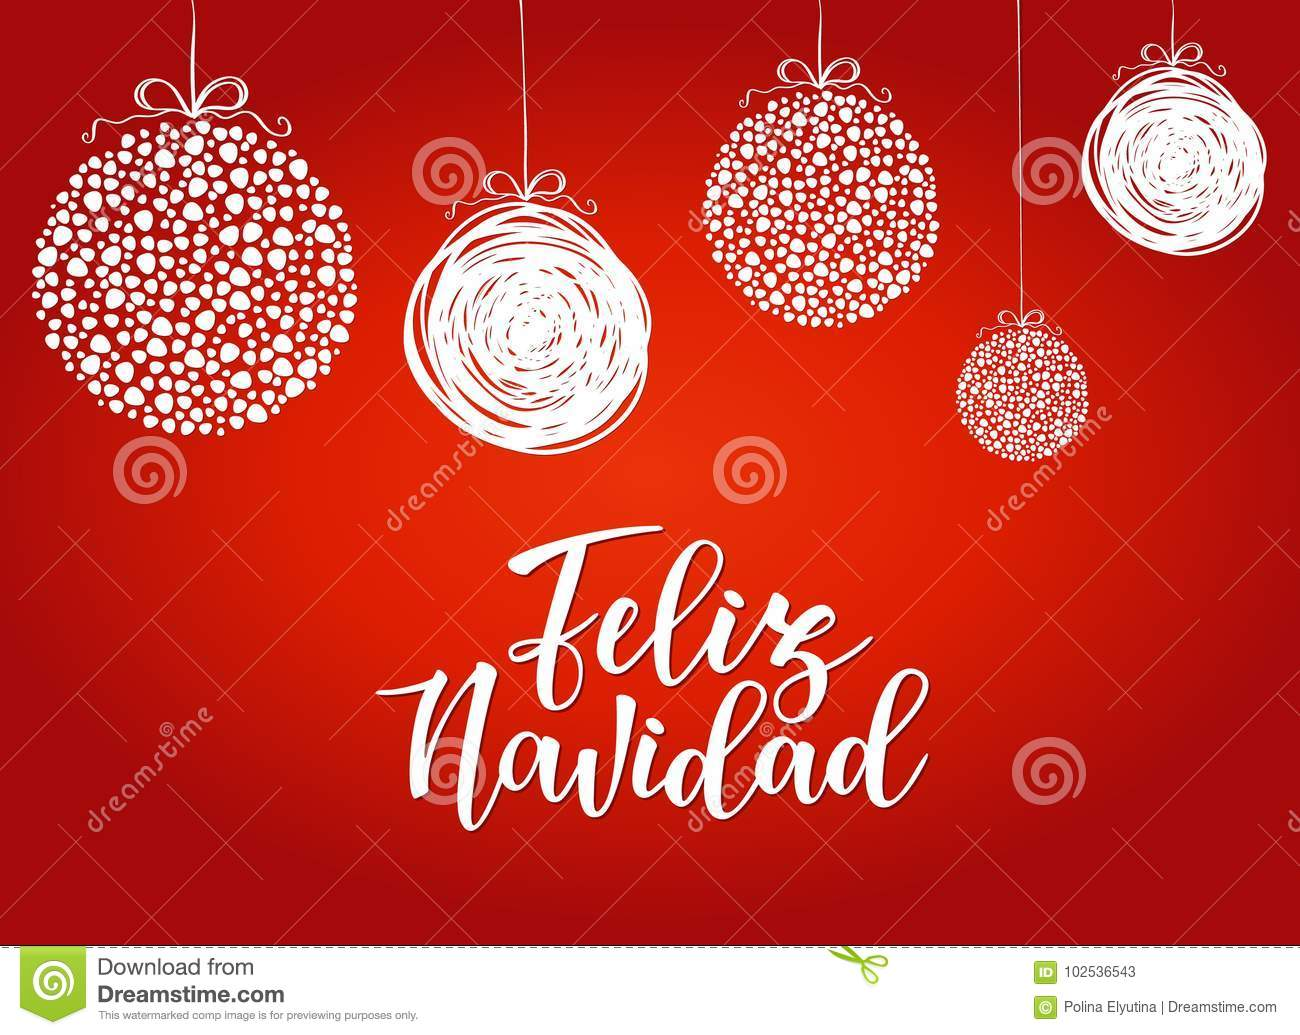 feliz navidad spanish typography lettering holiday greetings quote isolated white great christmas new year cards gift